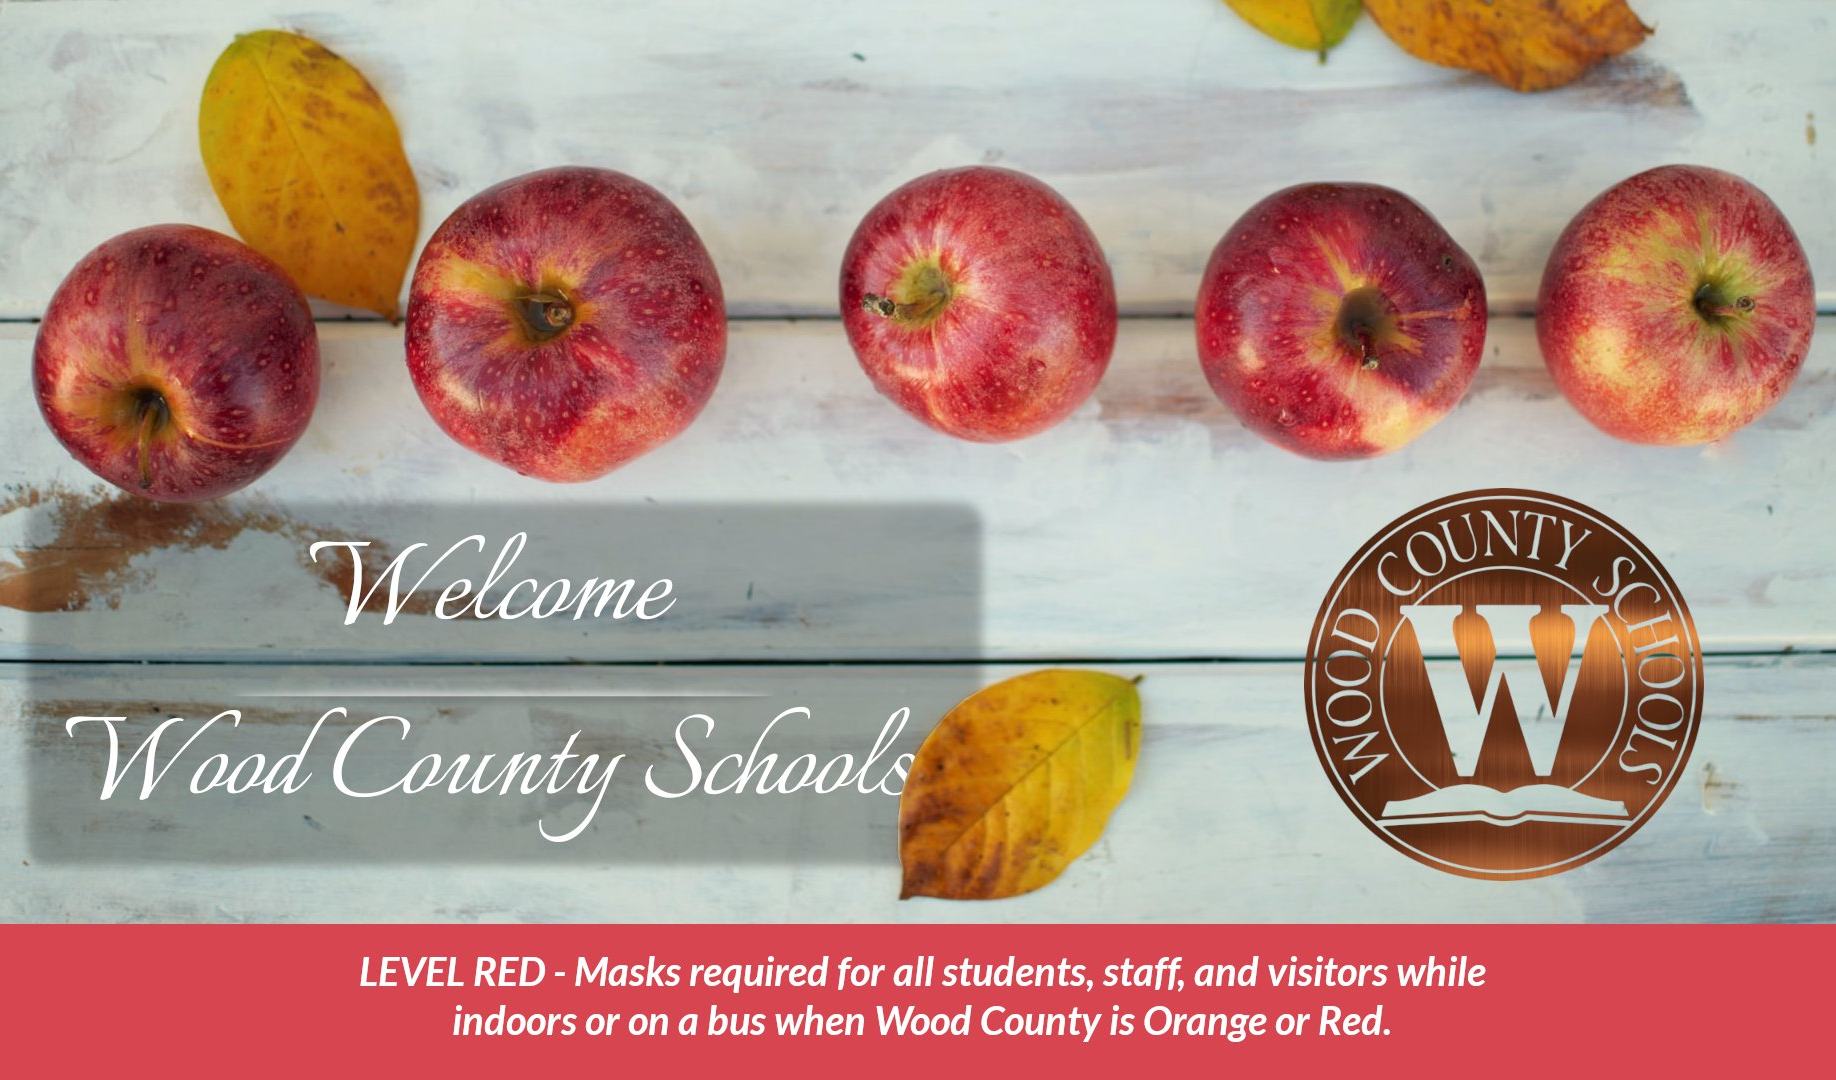 welcome to wood county schools autumn leaves red apples